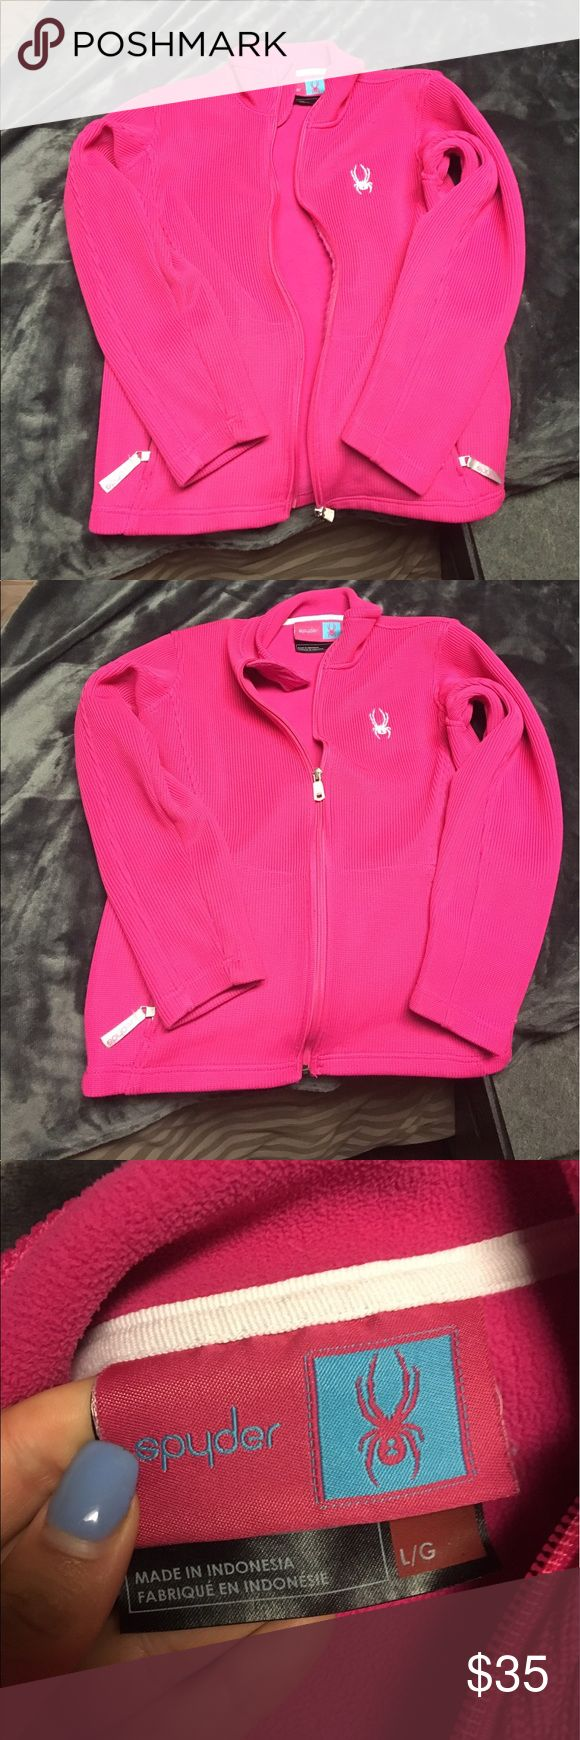 Bright Pink Spyder zip up This is a girls size large but fits a women's small or xs perfect! Great condition Spyder Jackets & Coats